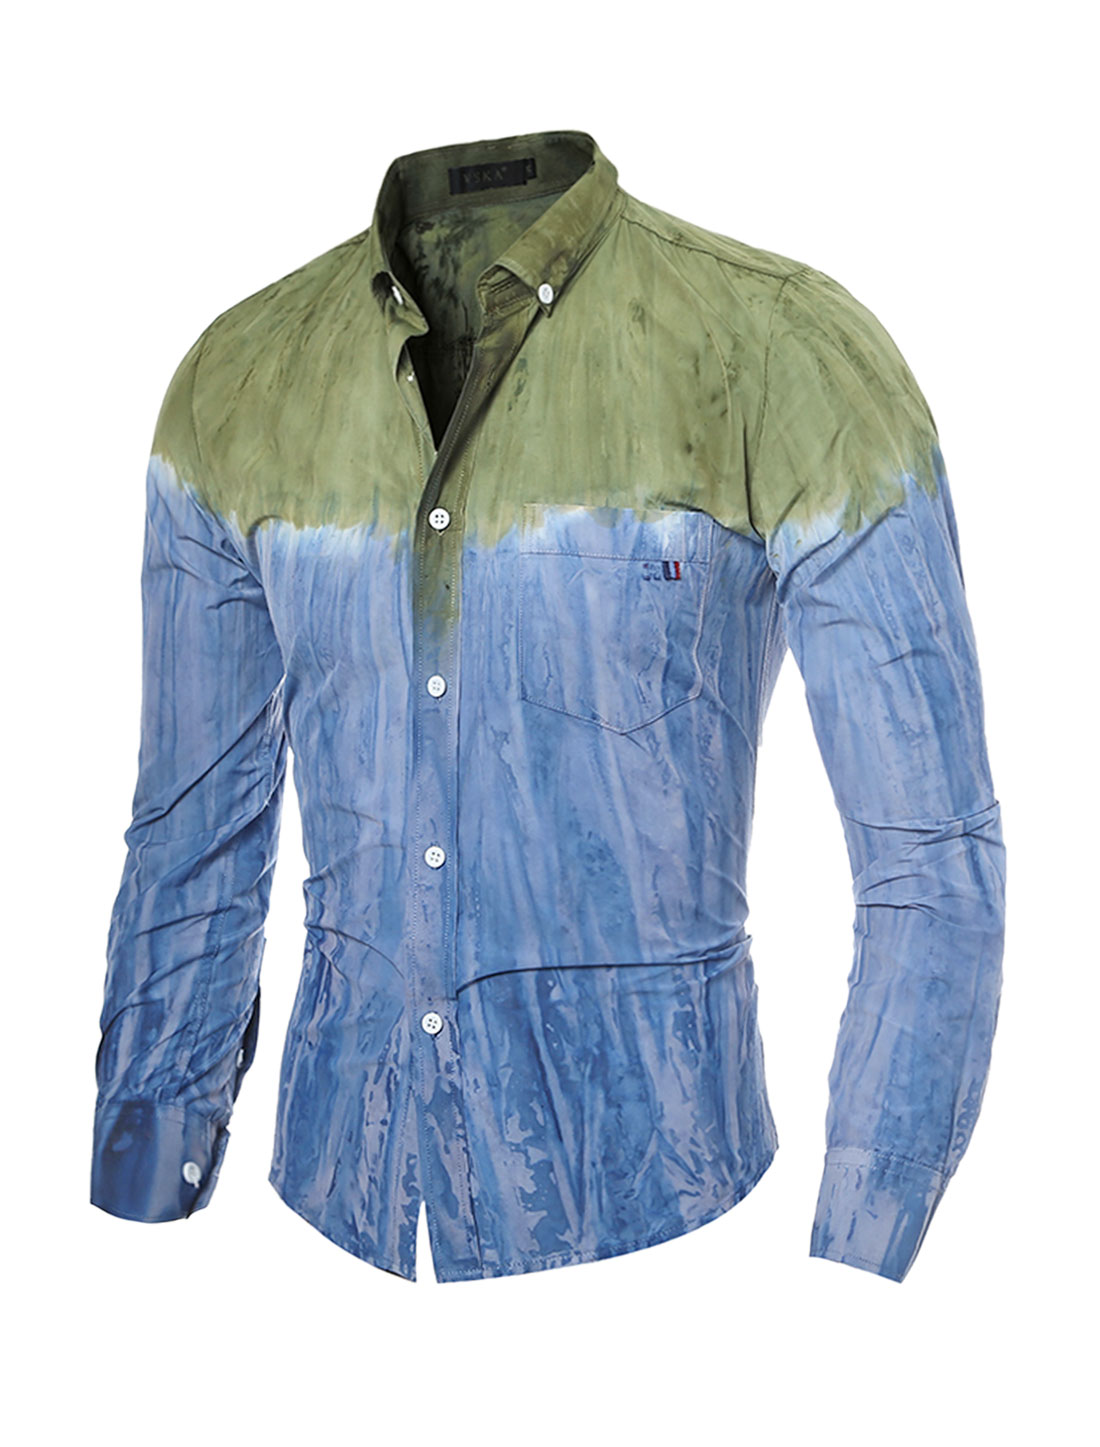 Man Button Down Slim Fit Tie-Dye Shirt w Pocket Blue Green S